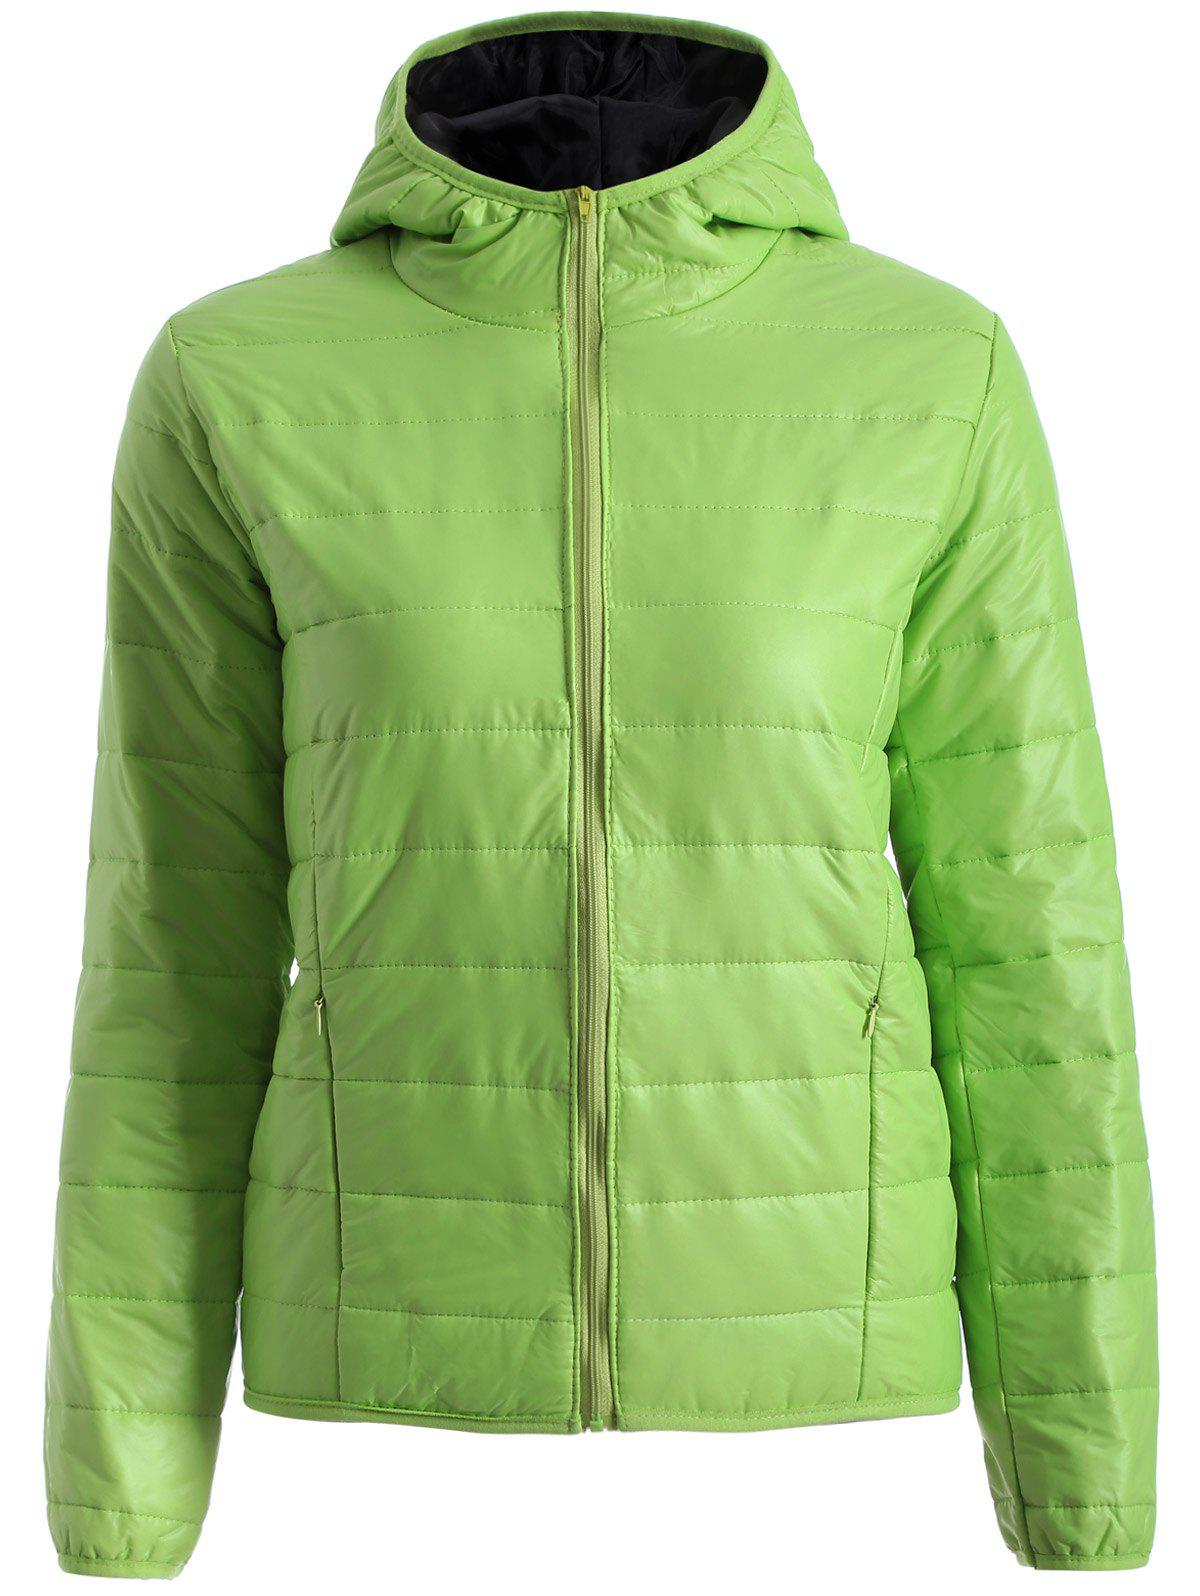 Topstitching Hooded Quilted Winter Jacket одеяло для cocoonababy quilted cocoonacover quilted grey 49118